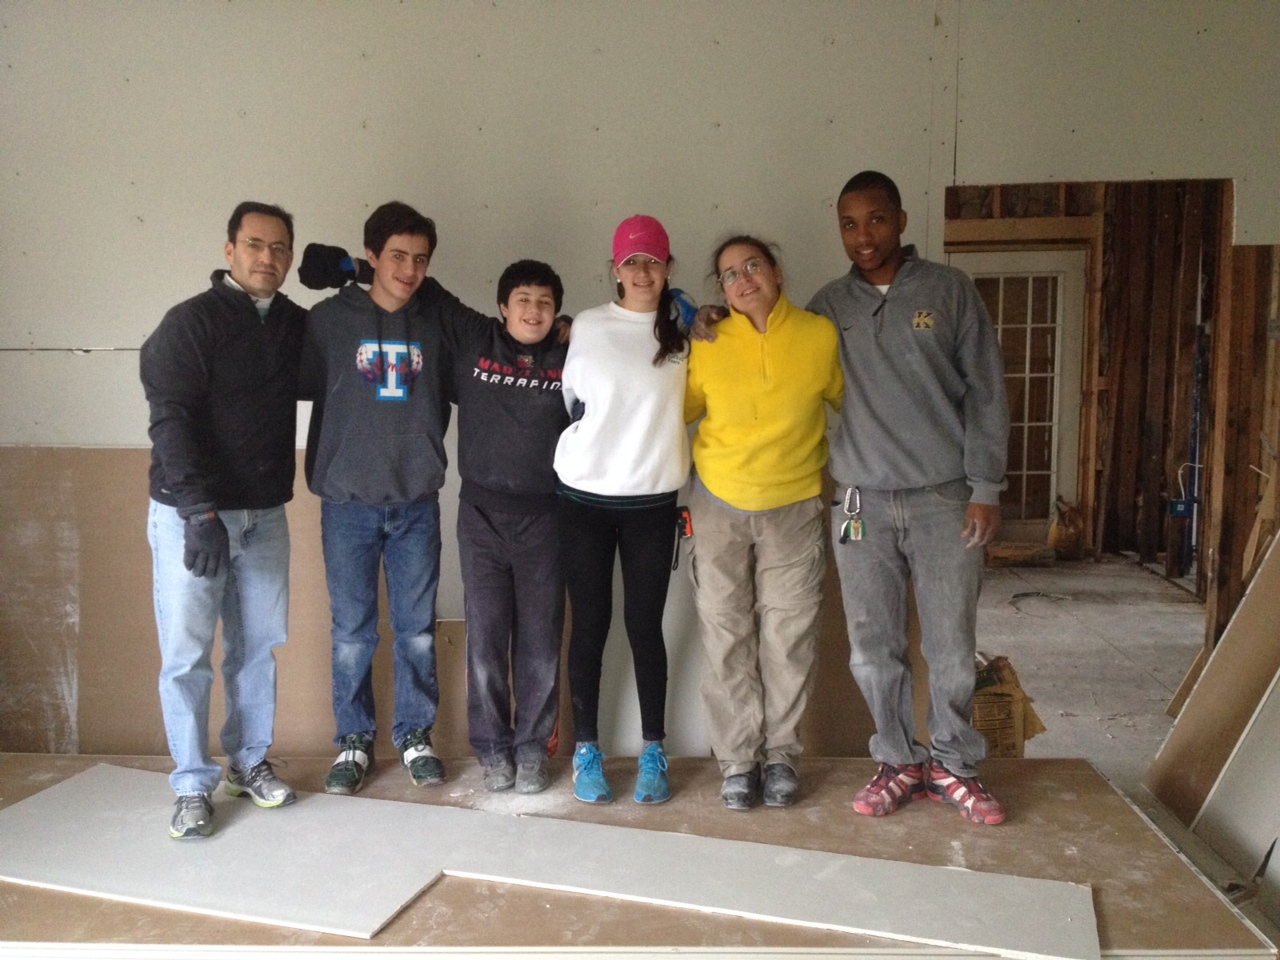 The Selati family helped Anne Baker and Prince with some sheetrocking at Alvar.